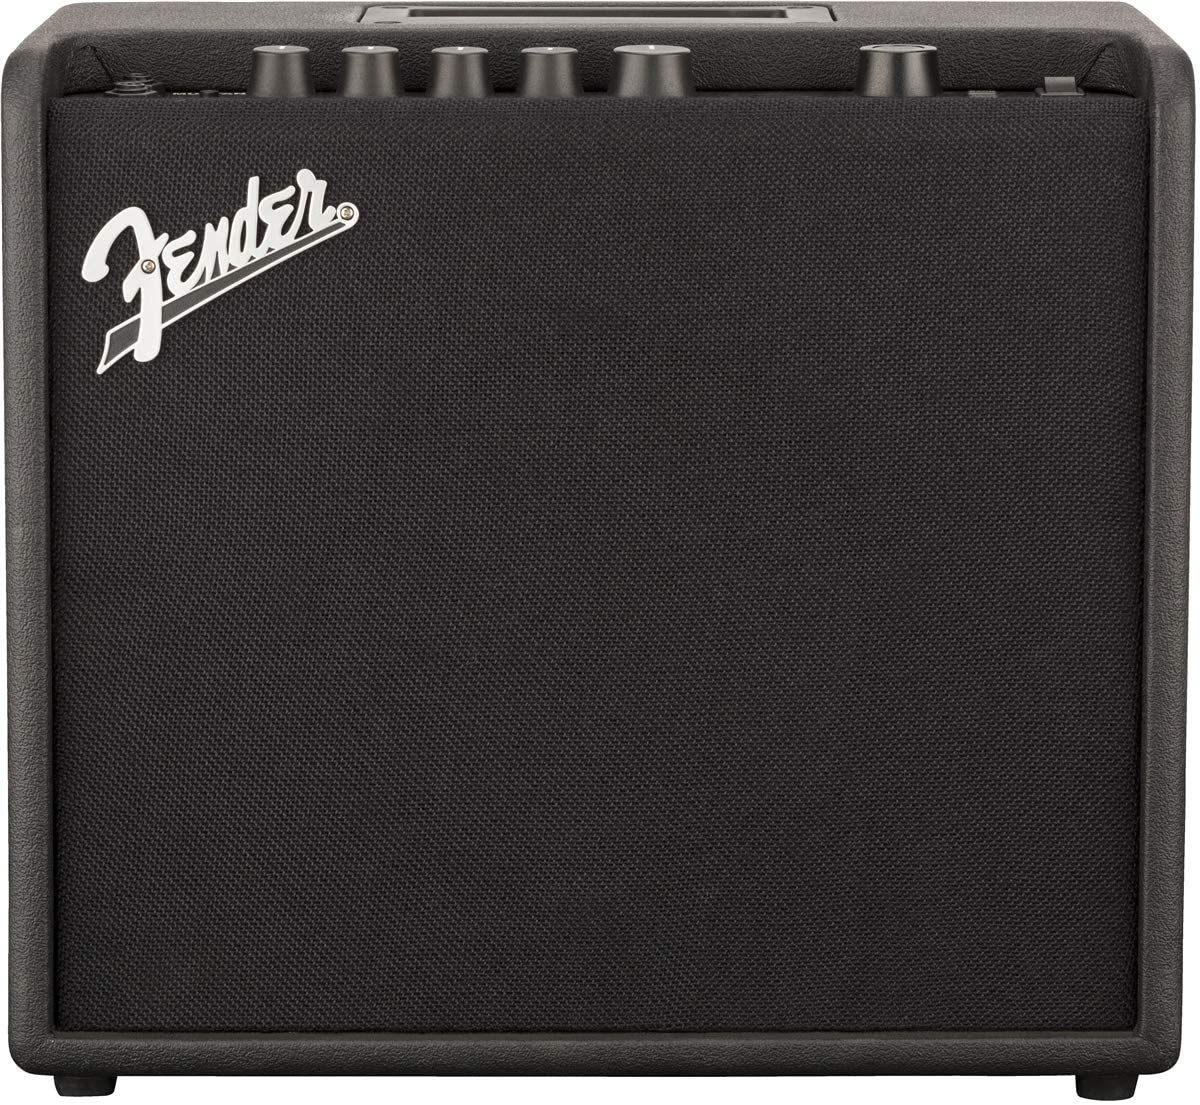 Fender Mustang LT-25 - Digital Guitar Amplifier - Electric Guitar Amplifiers